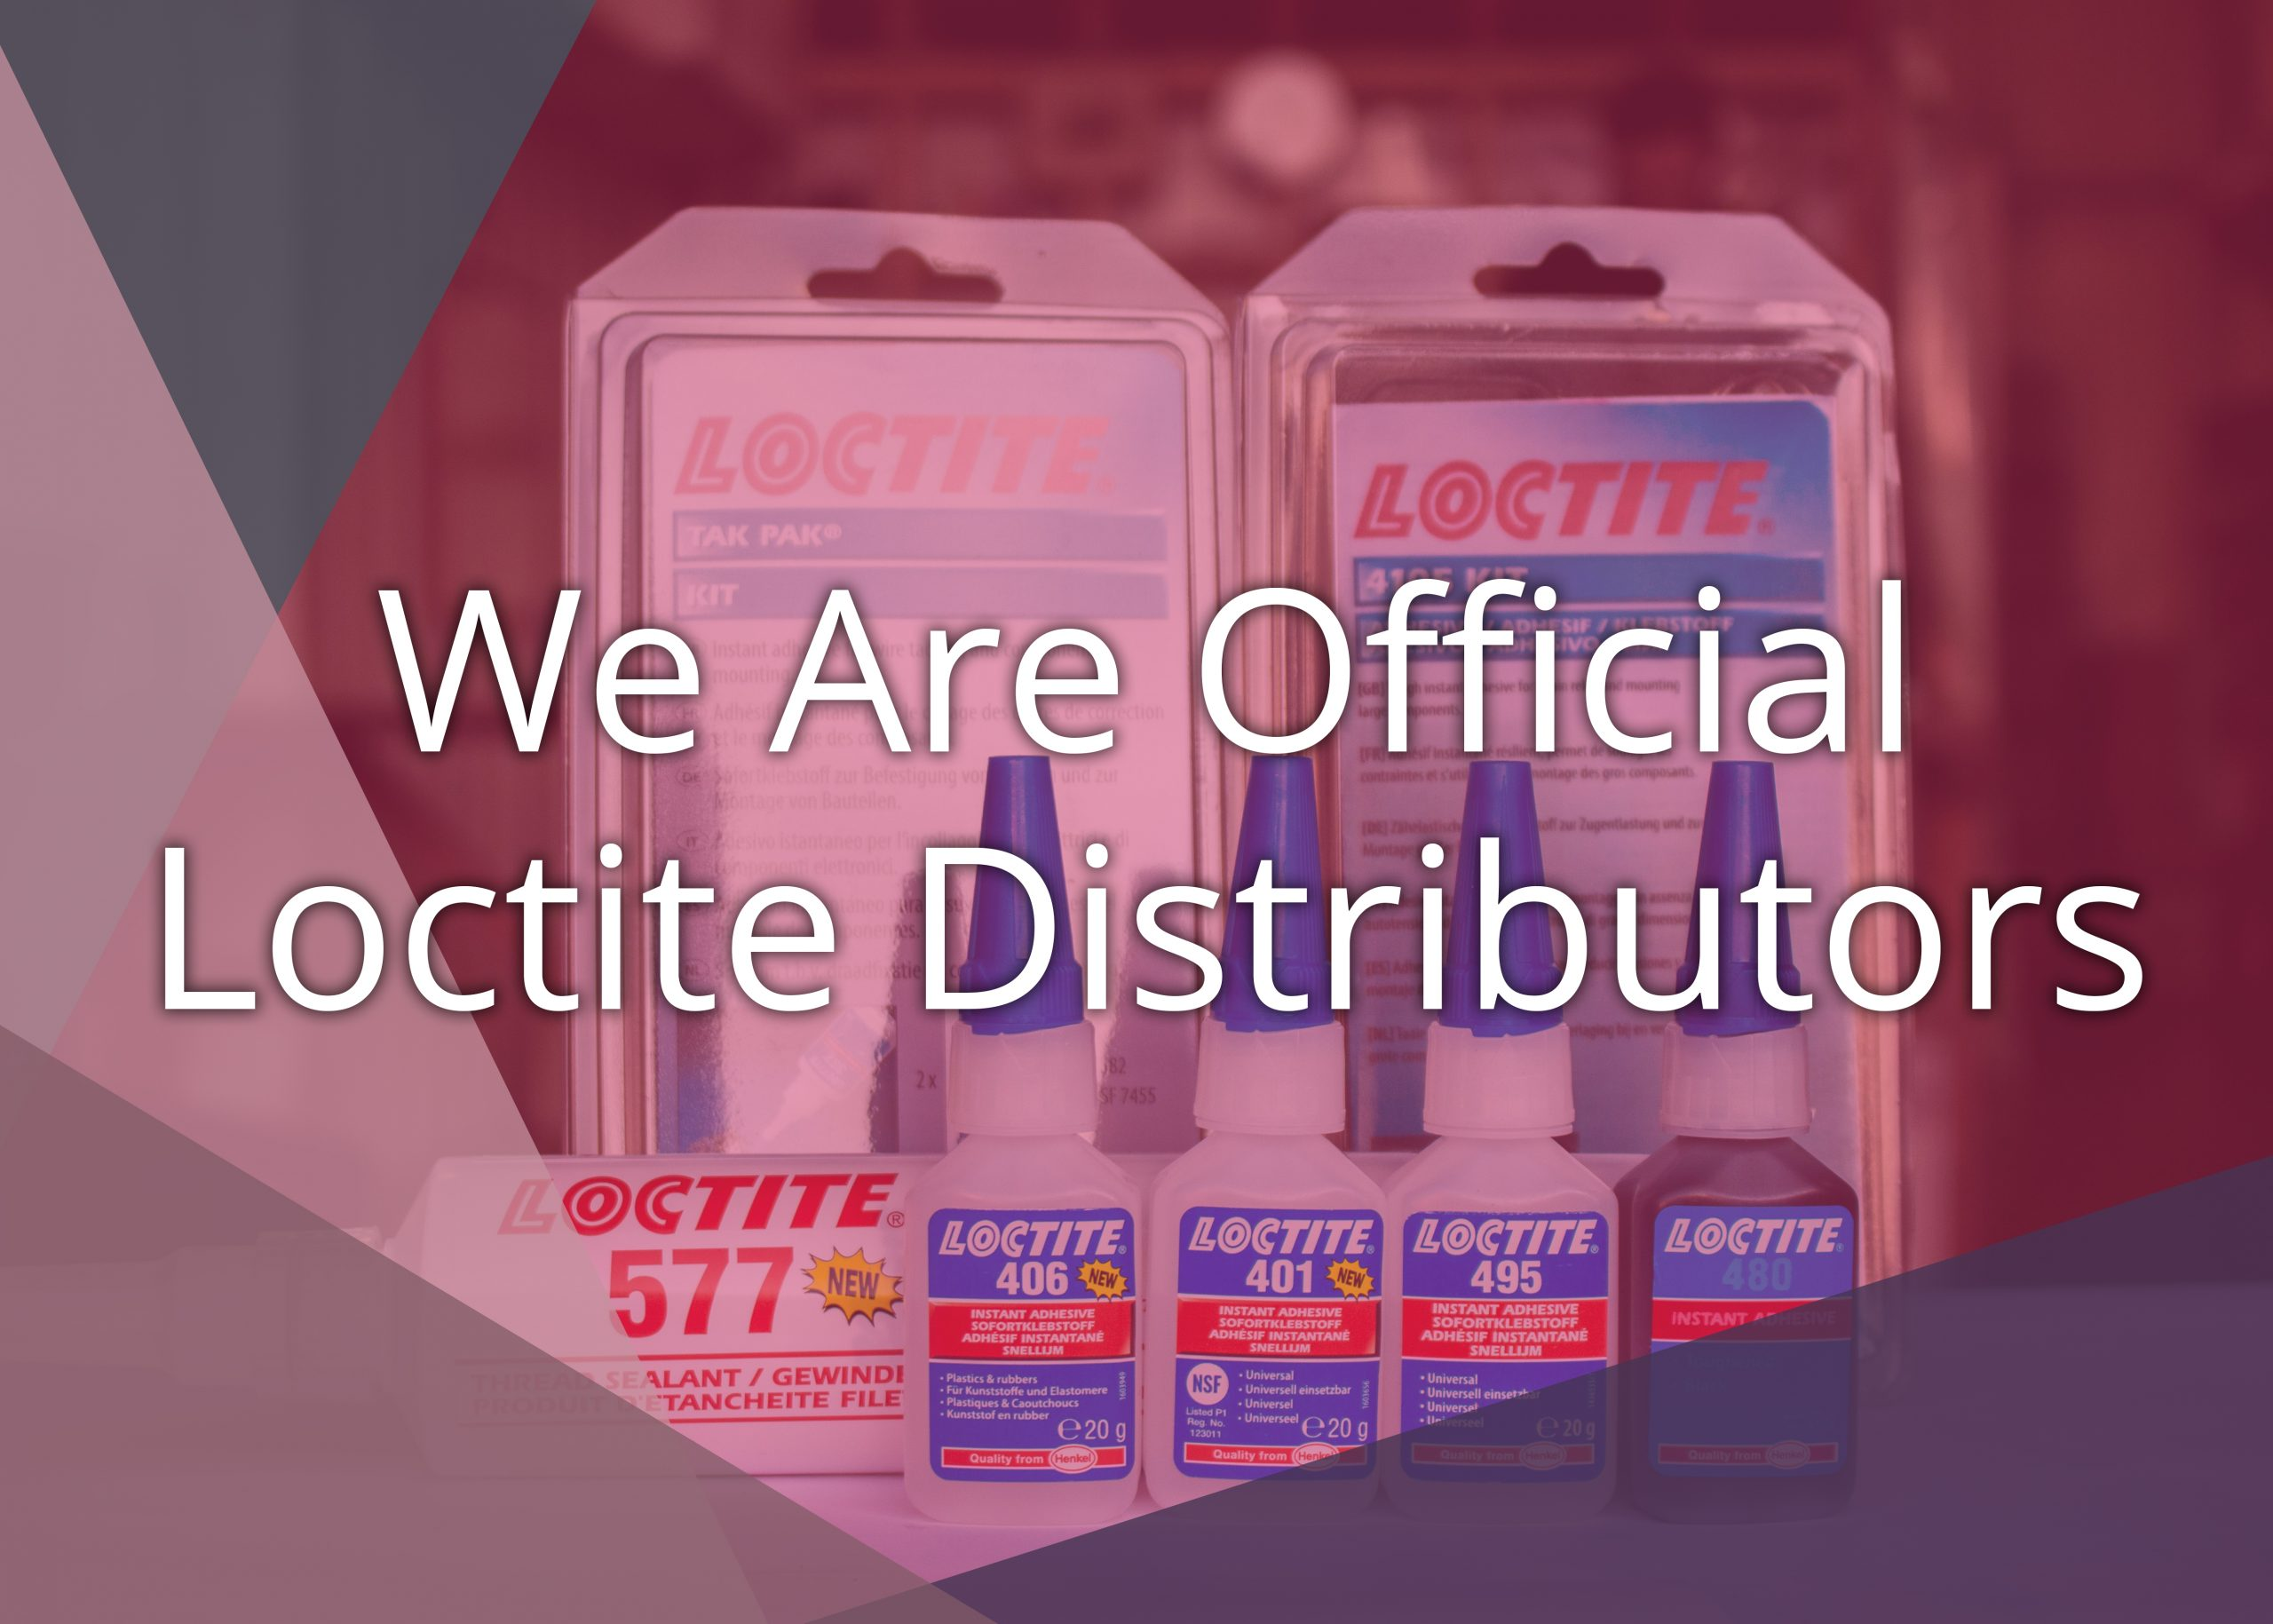 We Are Official Distributors of Loctite